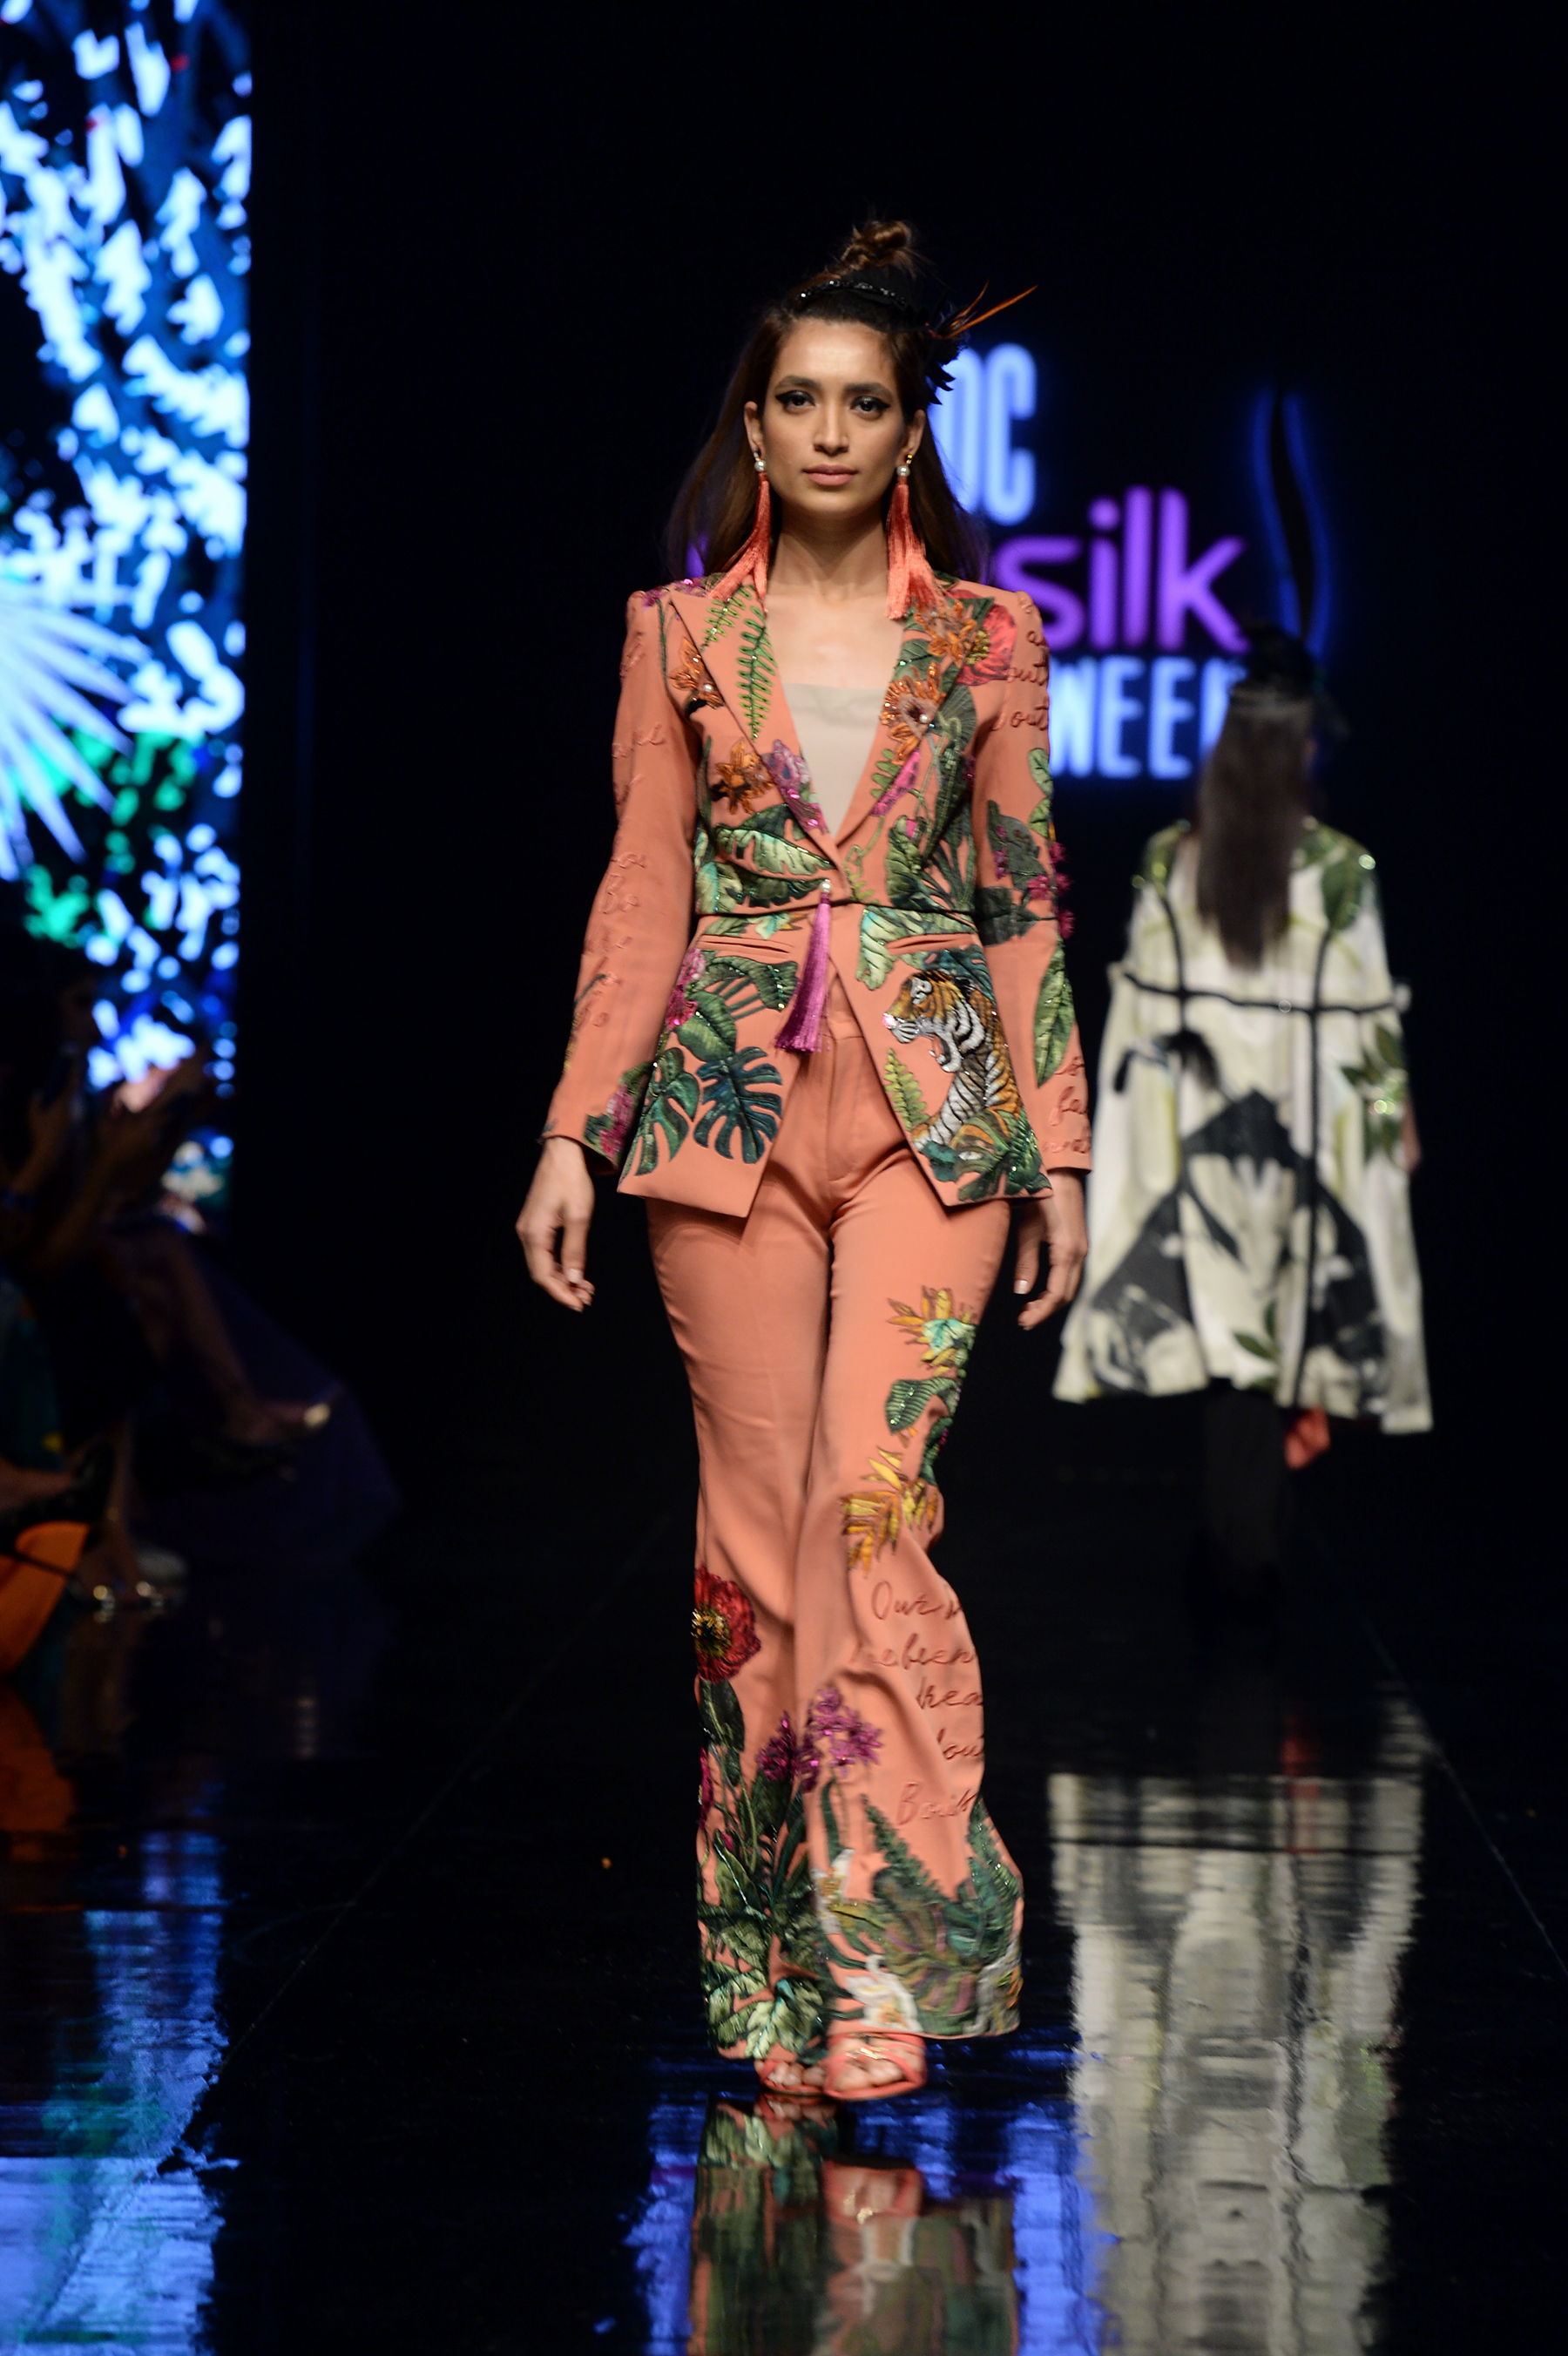 Arjumand Bano - PFDC Sunsilk Fashion Week 2018 - Photography by Faisal Farooqui and his team at DragonFly